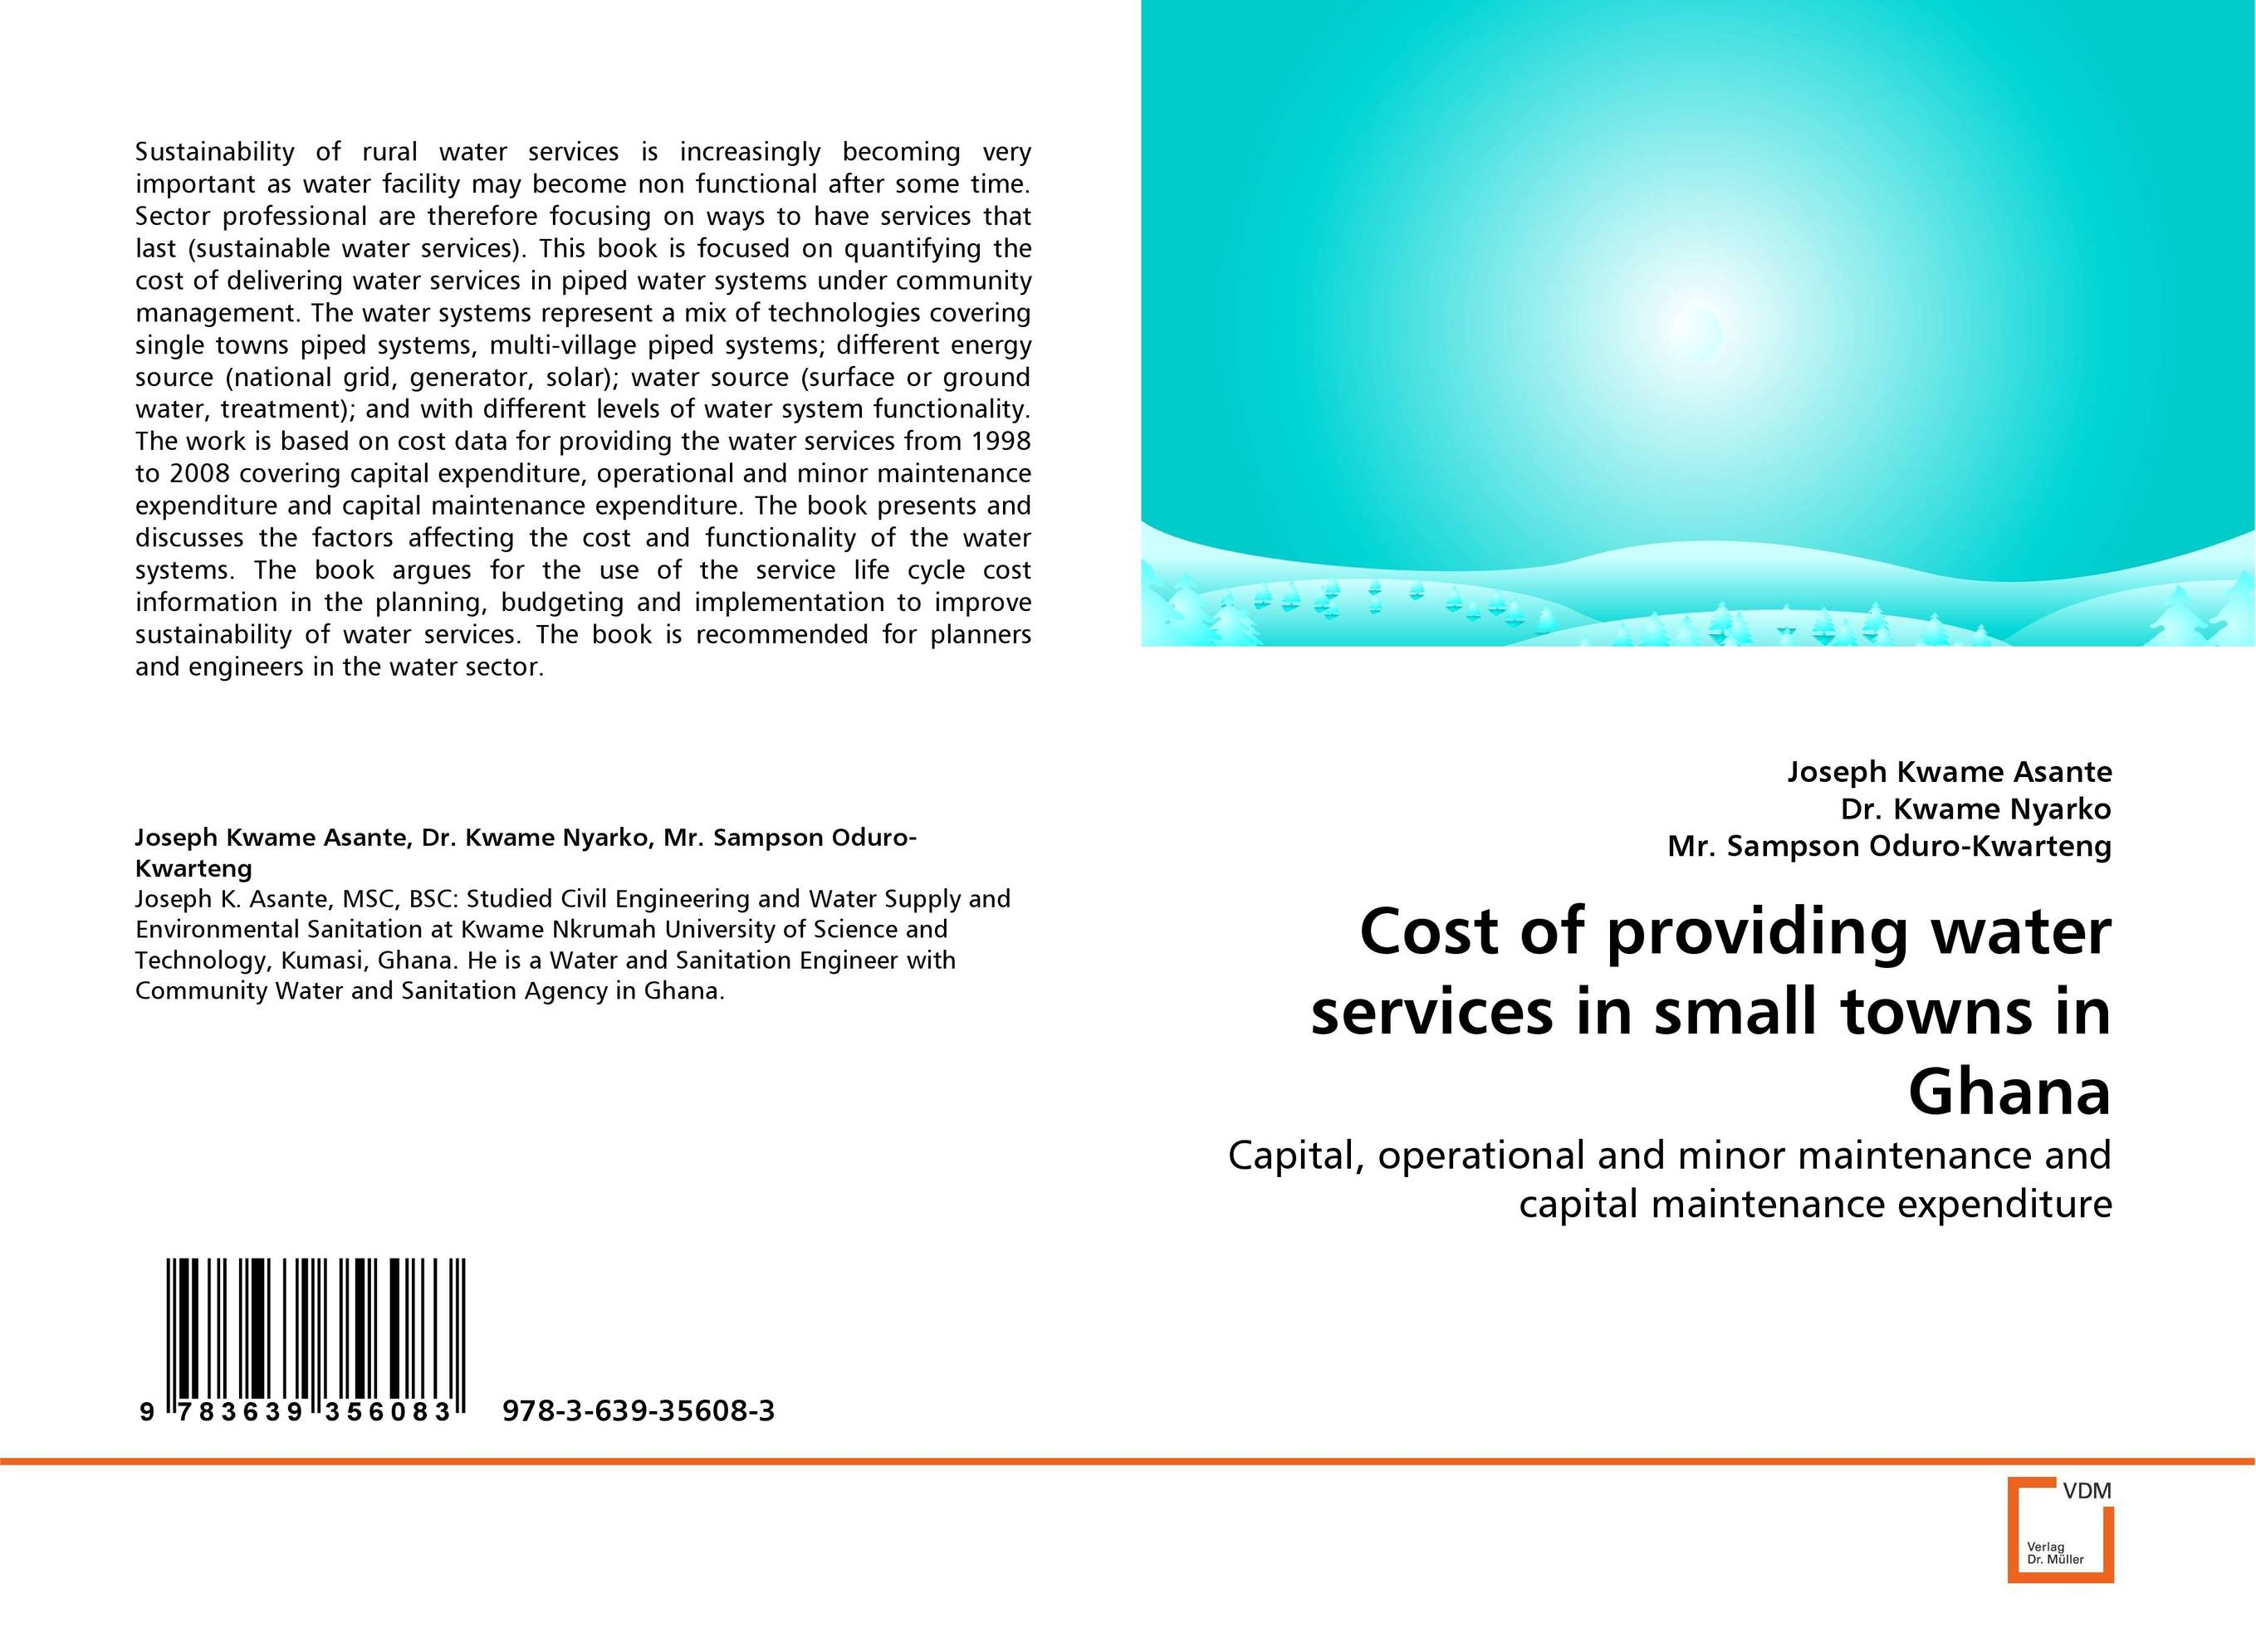 Cost of providing water services in small towns in Ghana supervised delivery services in ghana